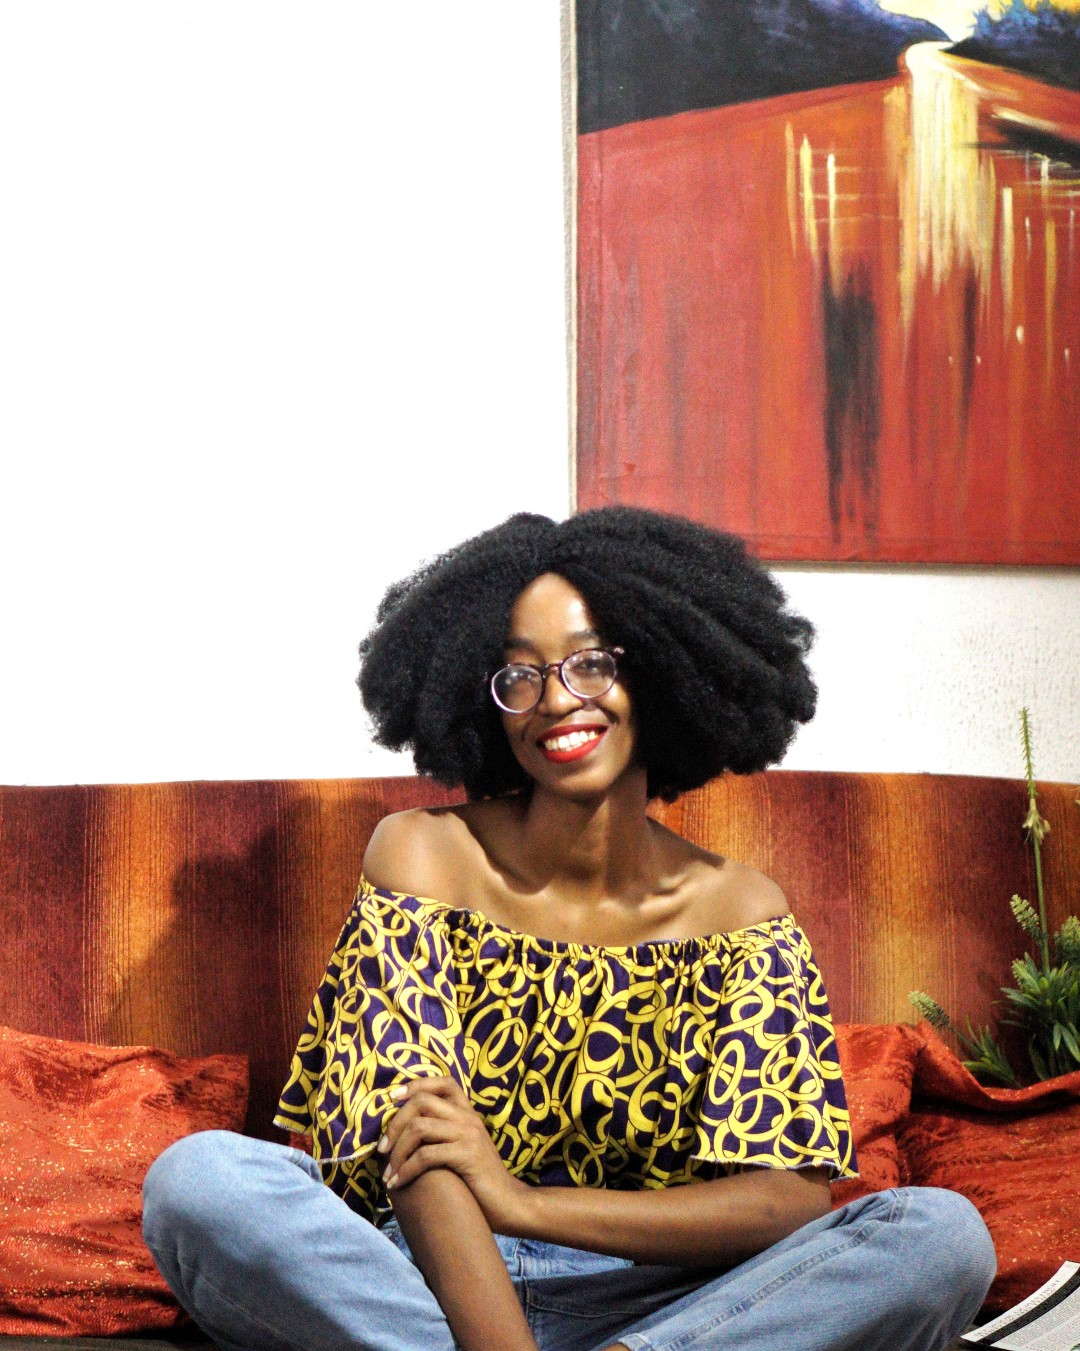 Blogger Cassie Daves on how to be alone and self love